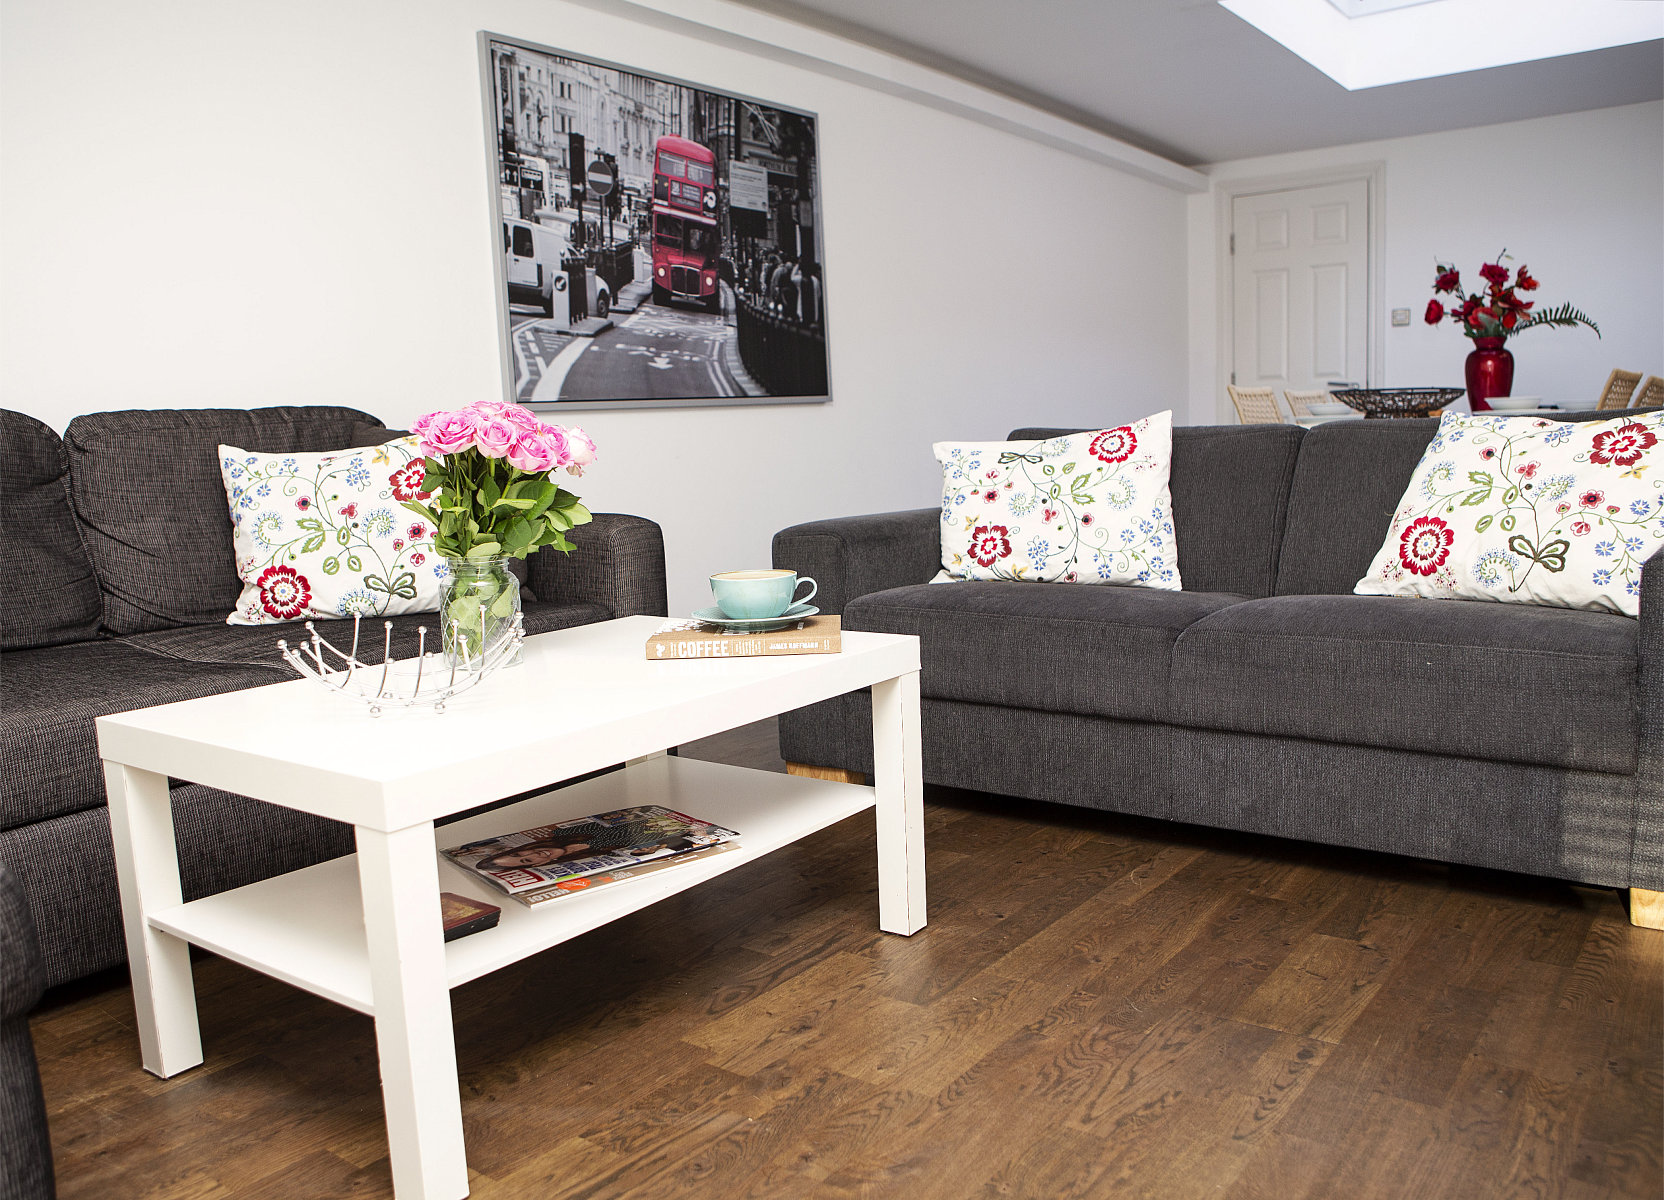 Trafalgar Square Apartments, Apartment 3, Covent Garden - Living Area